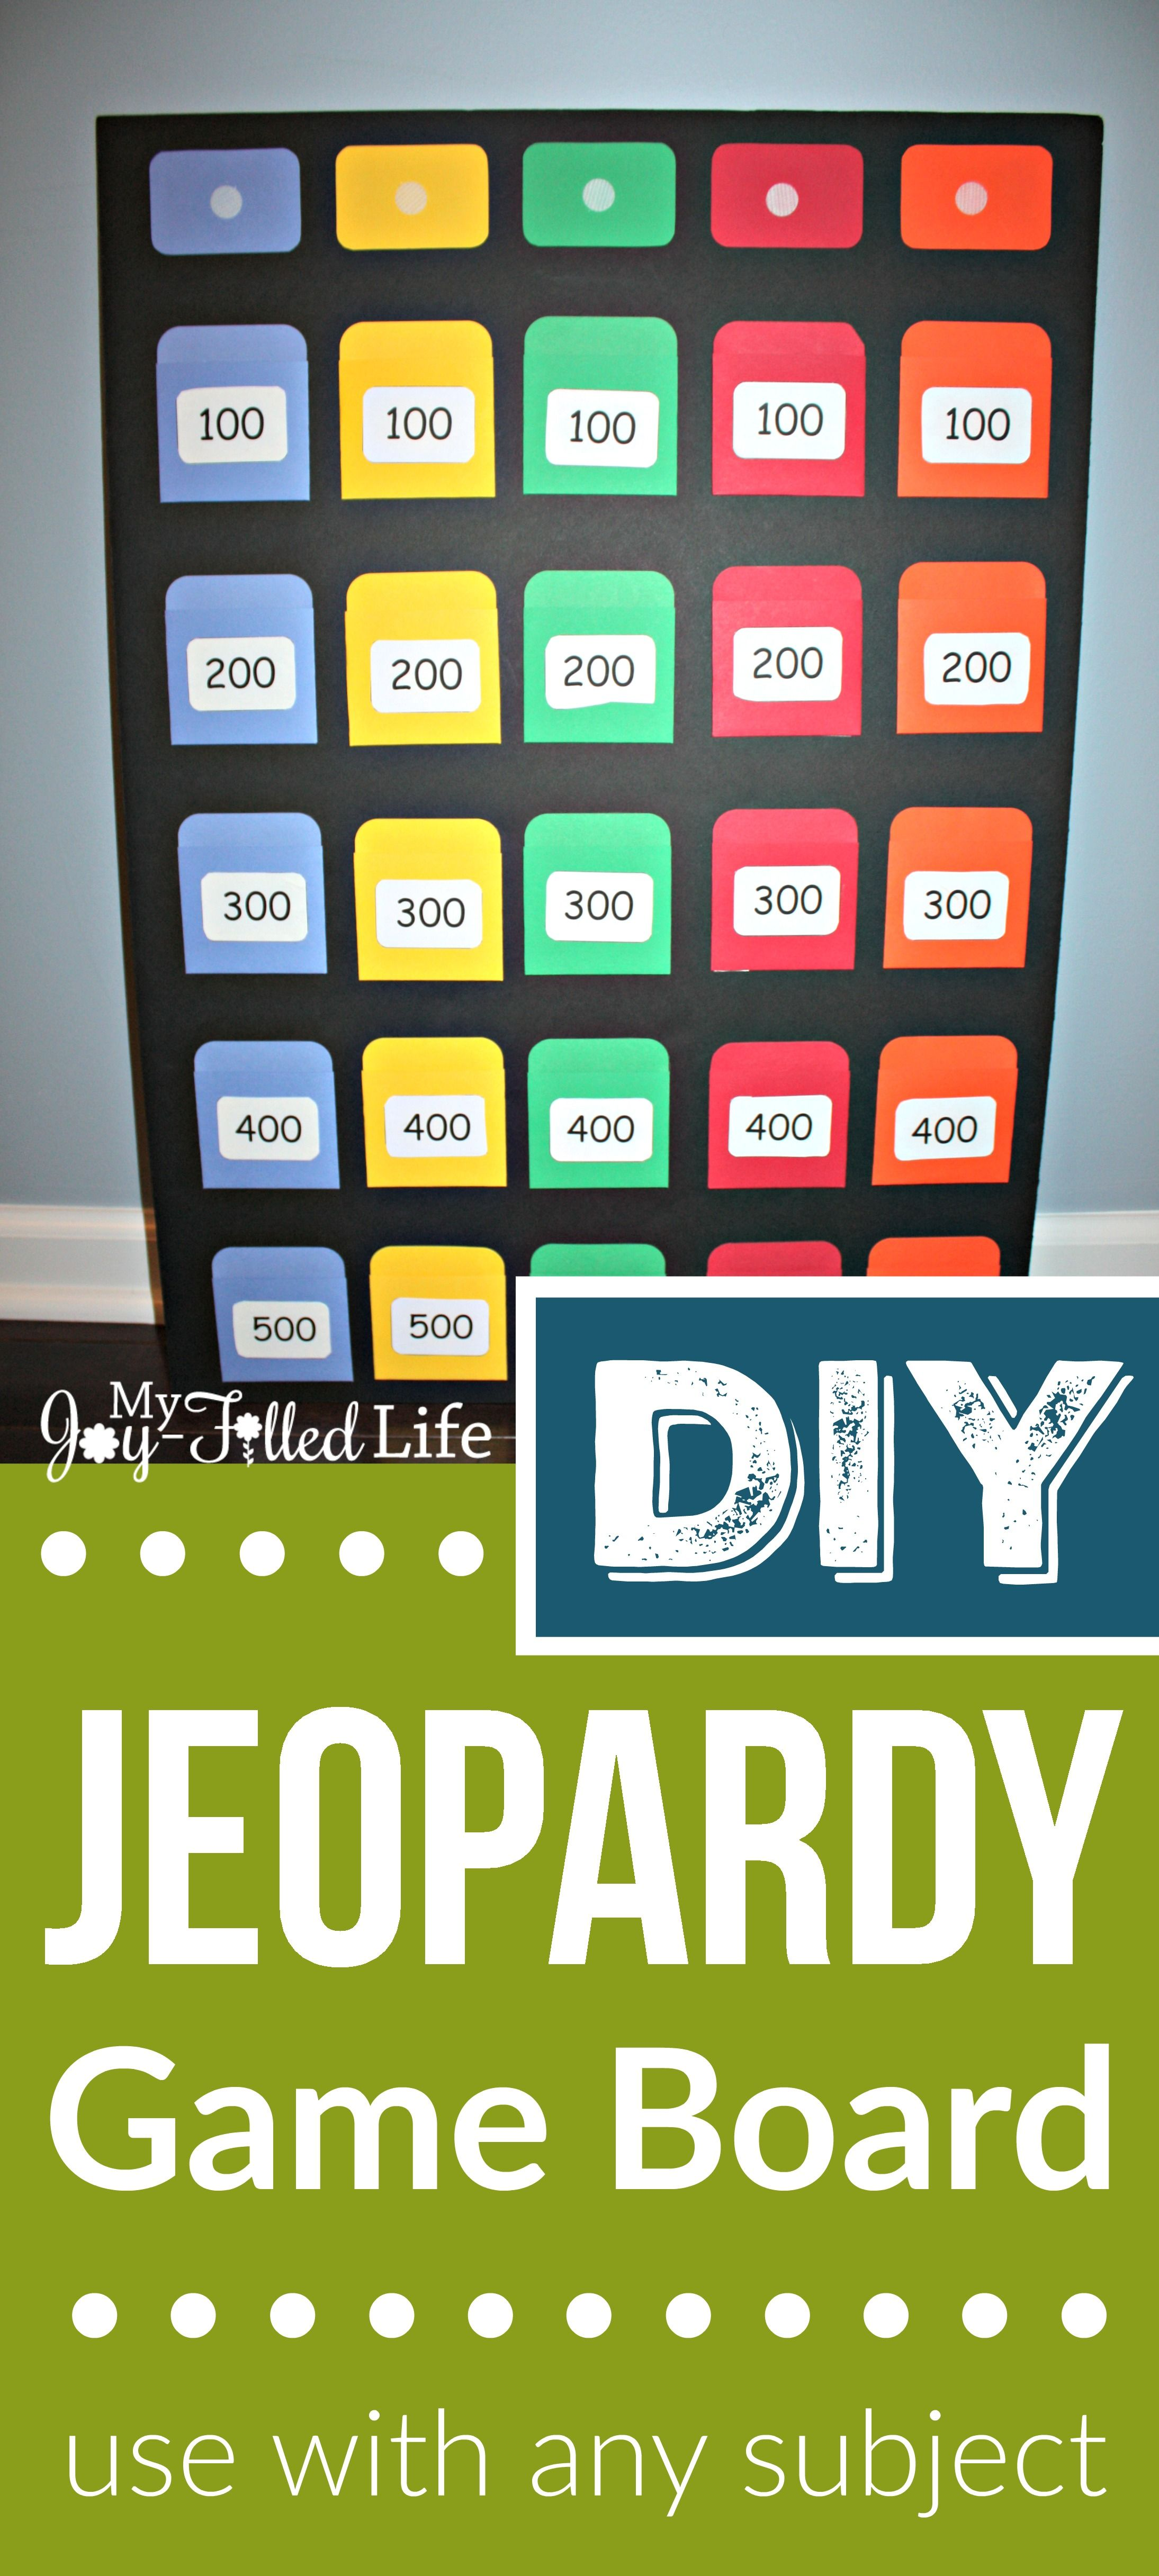 Diy Jeopardy Game Board Board Games Diy Jeopardy Game Family Games